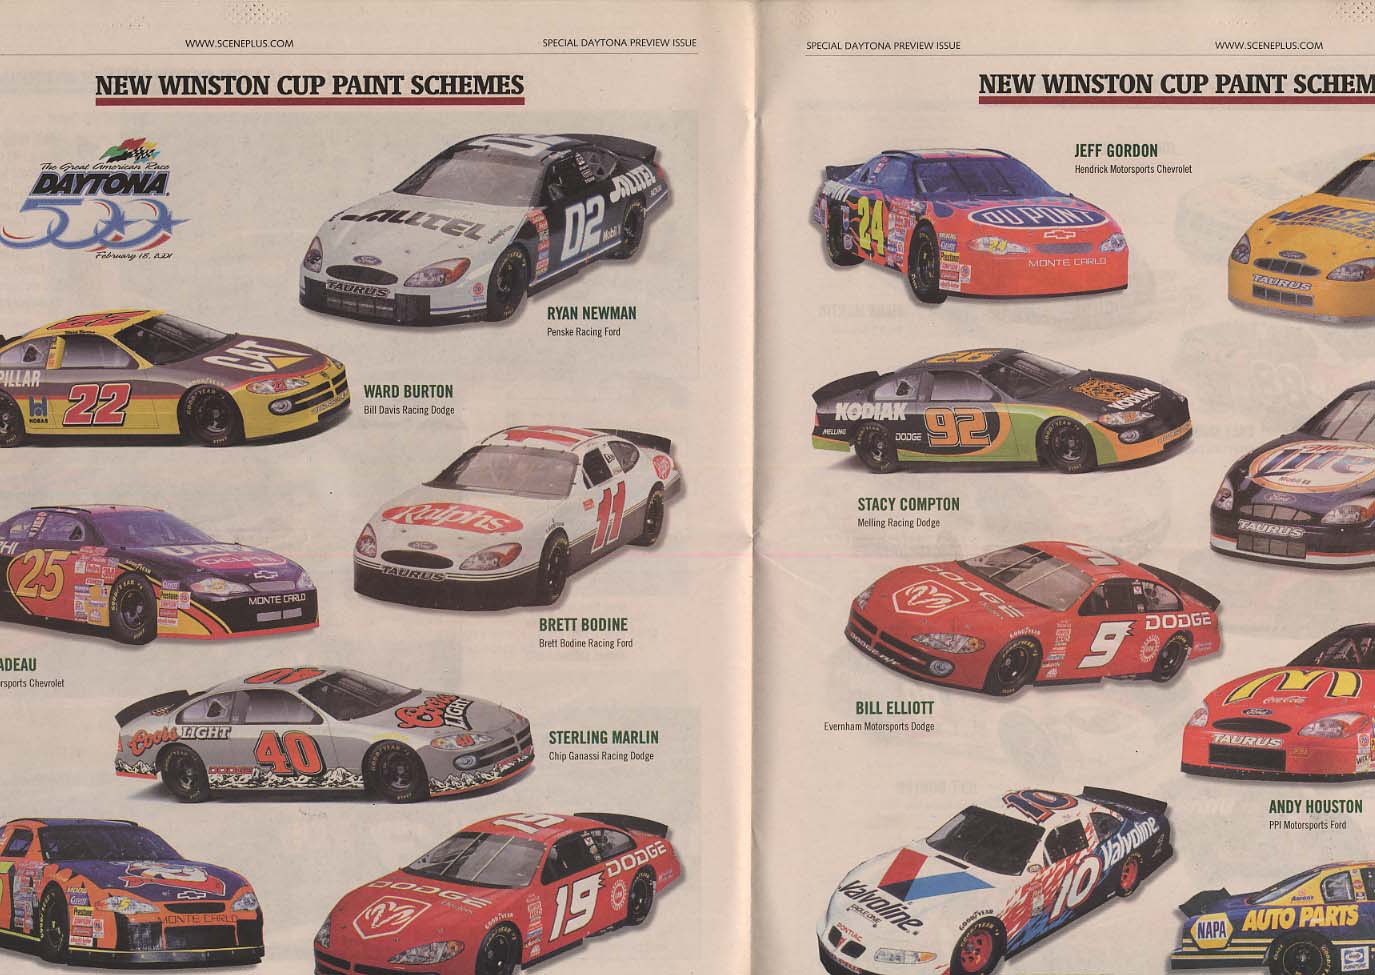 NASCAR WINSTON CUP SCENE Daytona 2001 Speedweeks preview & review